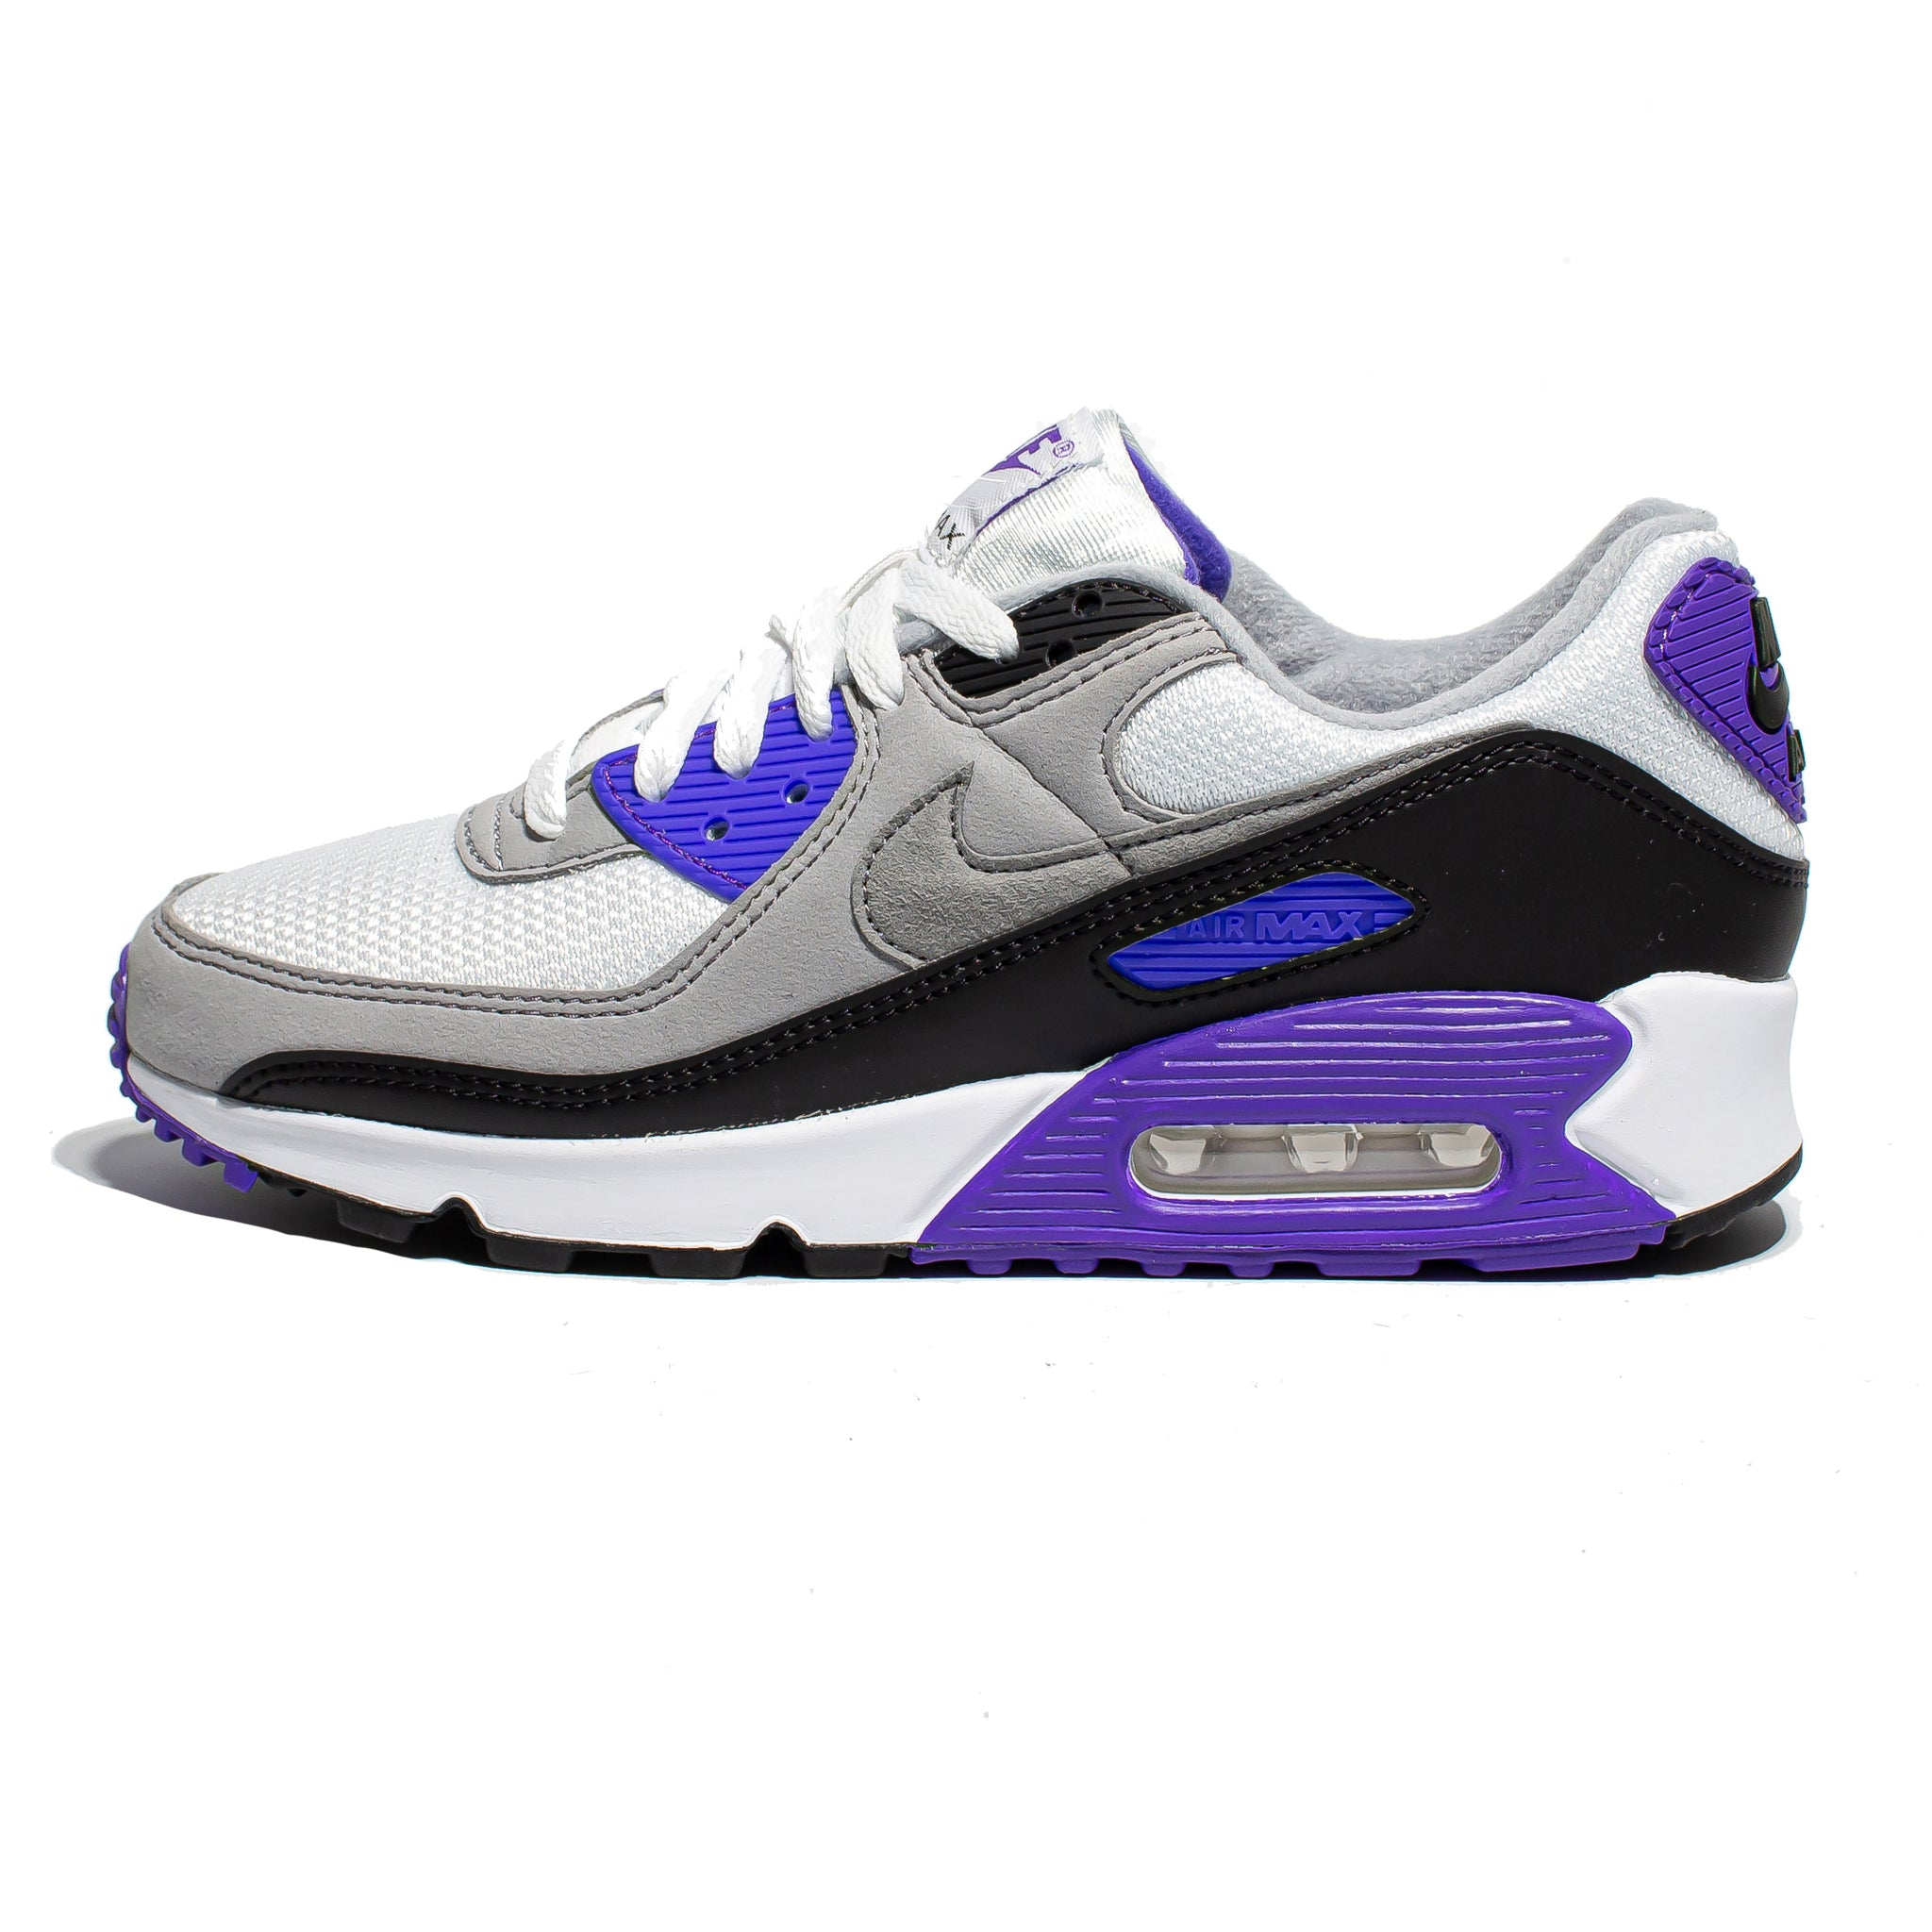 Nike Air Max 90 'Hyper Grape'